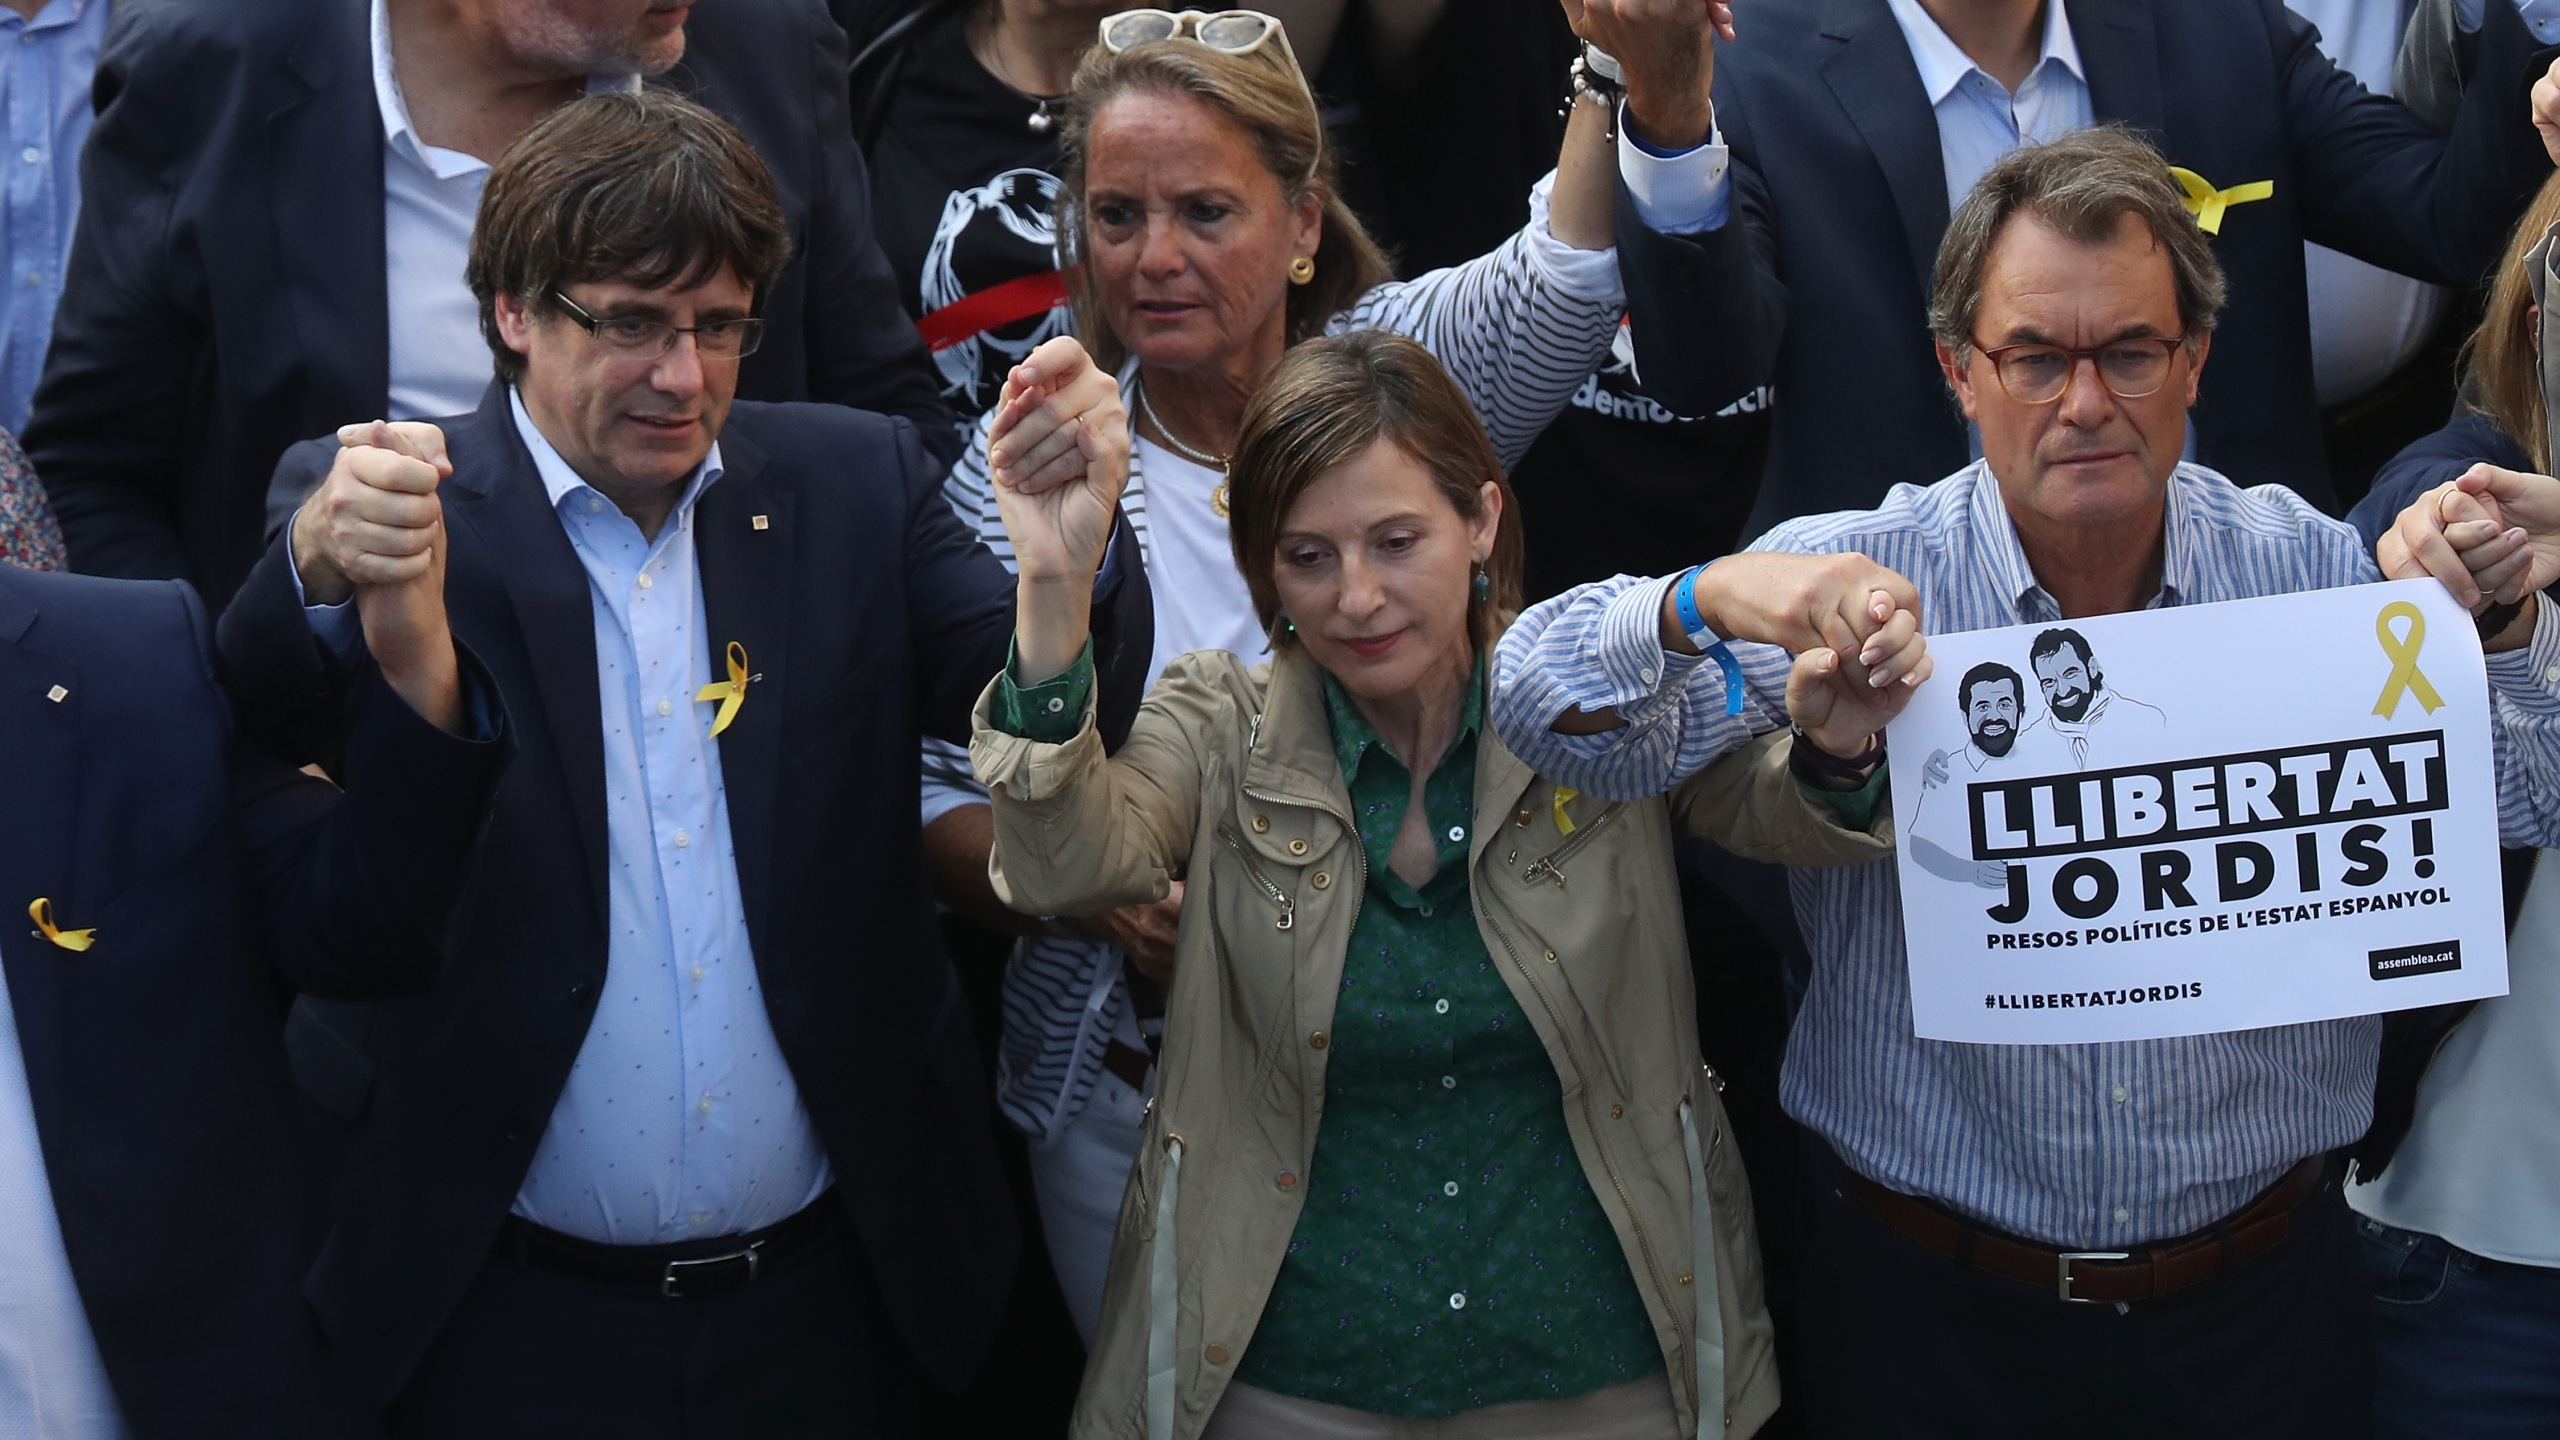 Catalan regional President Carles Puigdemont (left) and Catalan Parliament President Carme Forcadell (center) attend a Catalan independence rally to demand the release of imprisoned Catalan leaders Jordi Sanchez and Jordi Cuixart on October 21, 2017 in Barcelona, Spain. (Credit: Sean Gallup/Getty Images)